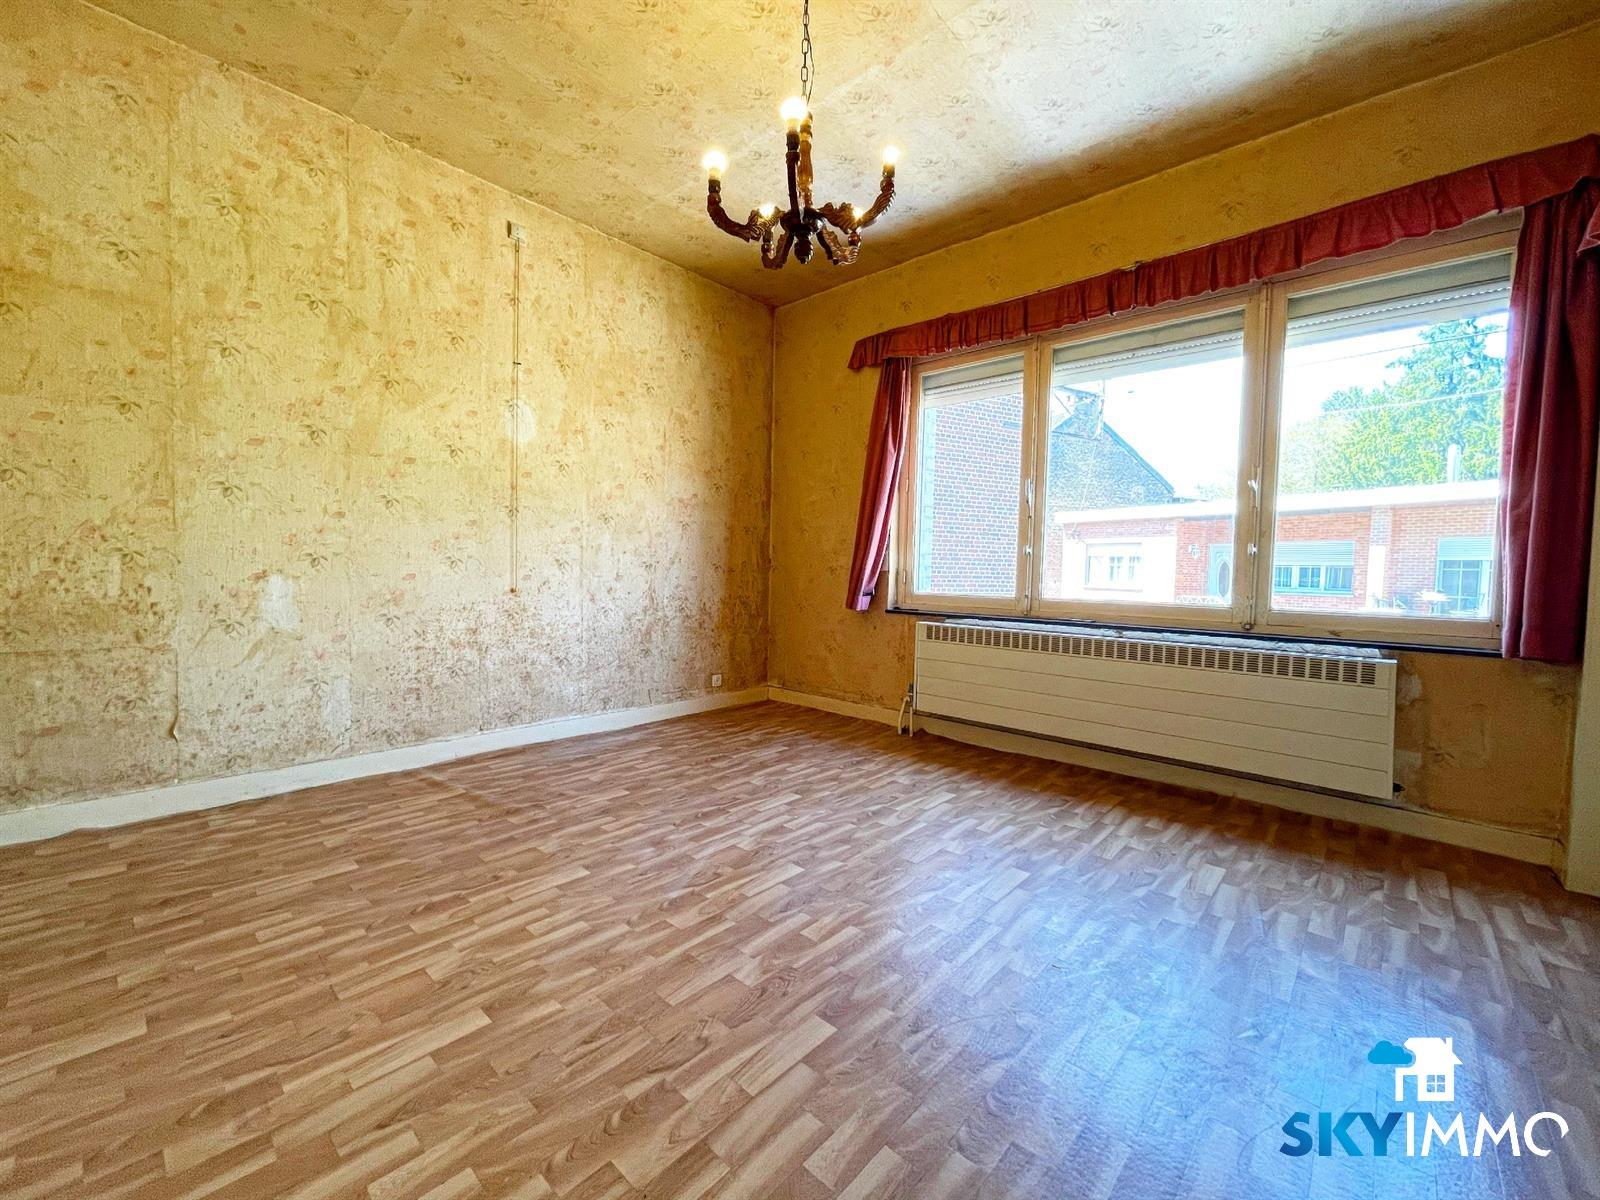 Huis - Flemalle - #4346611-27